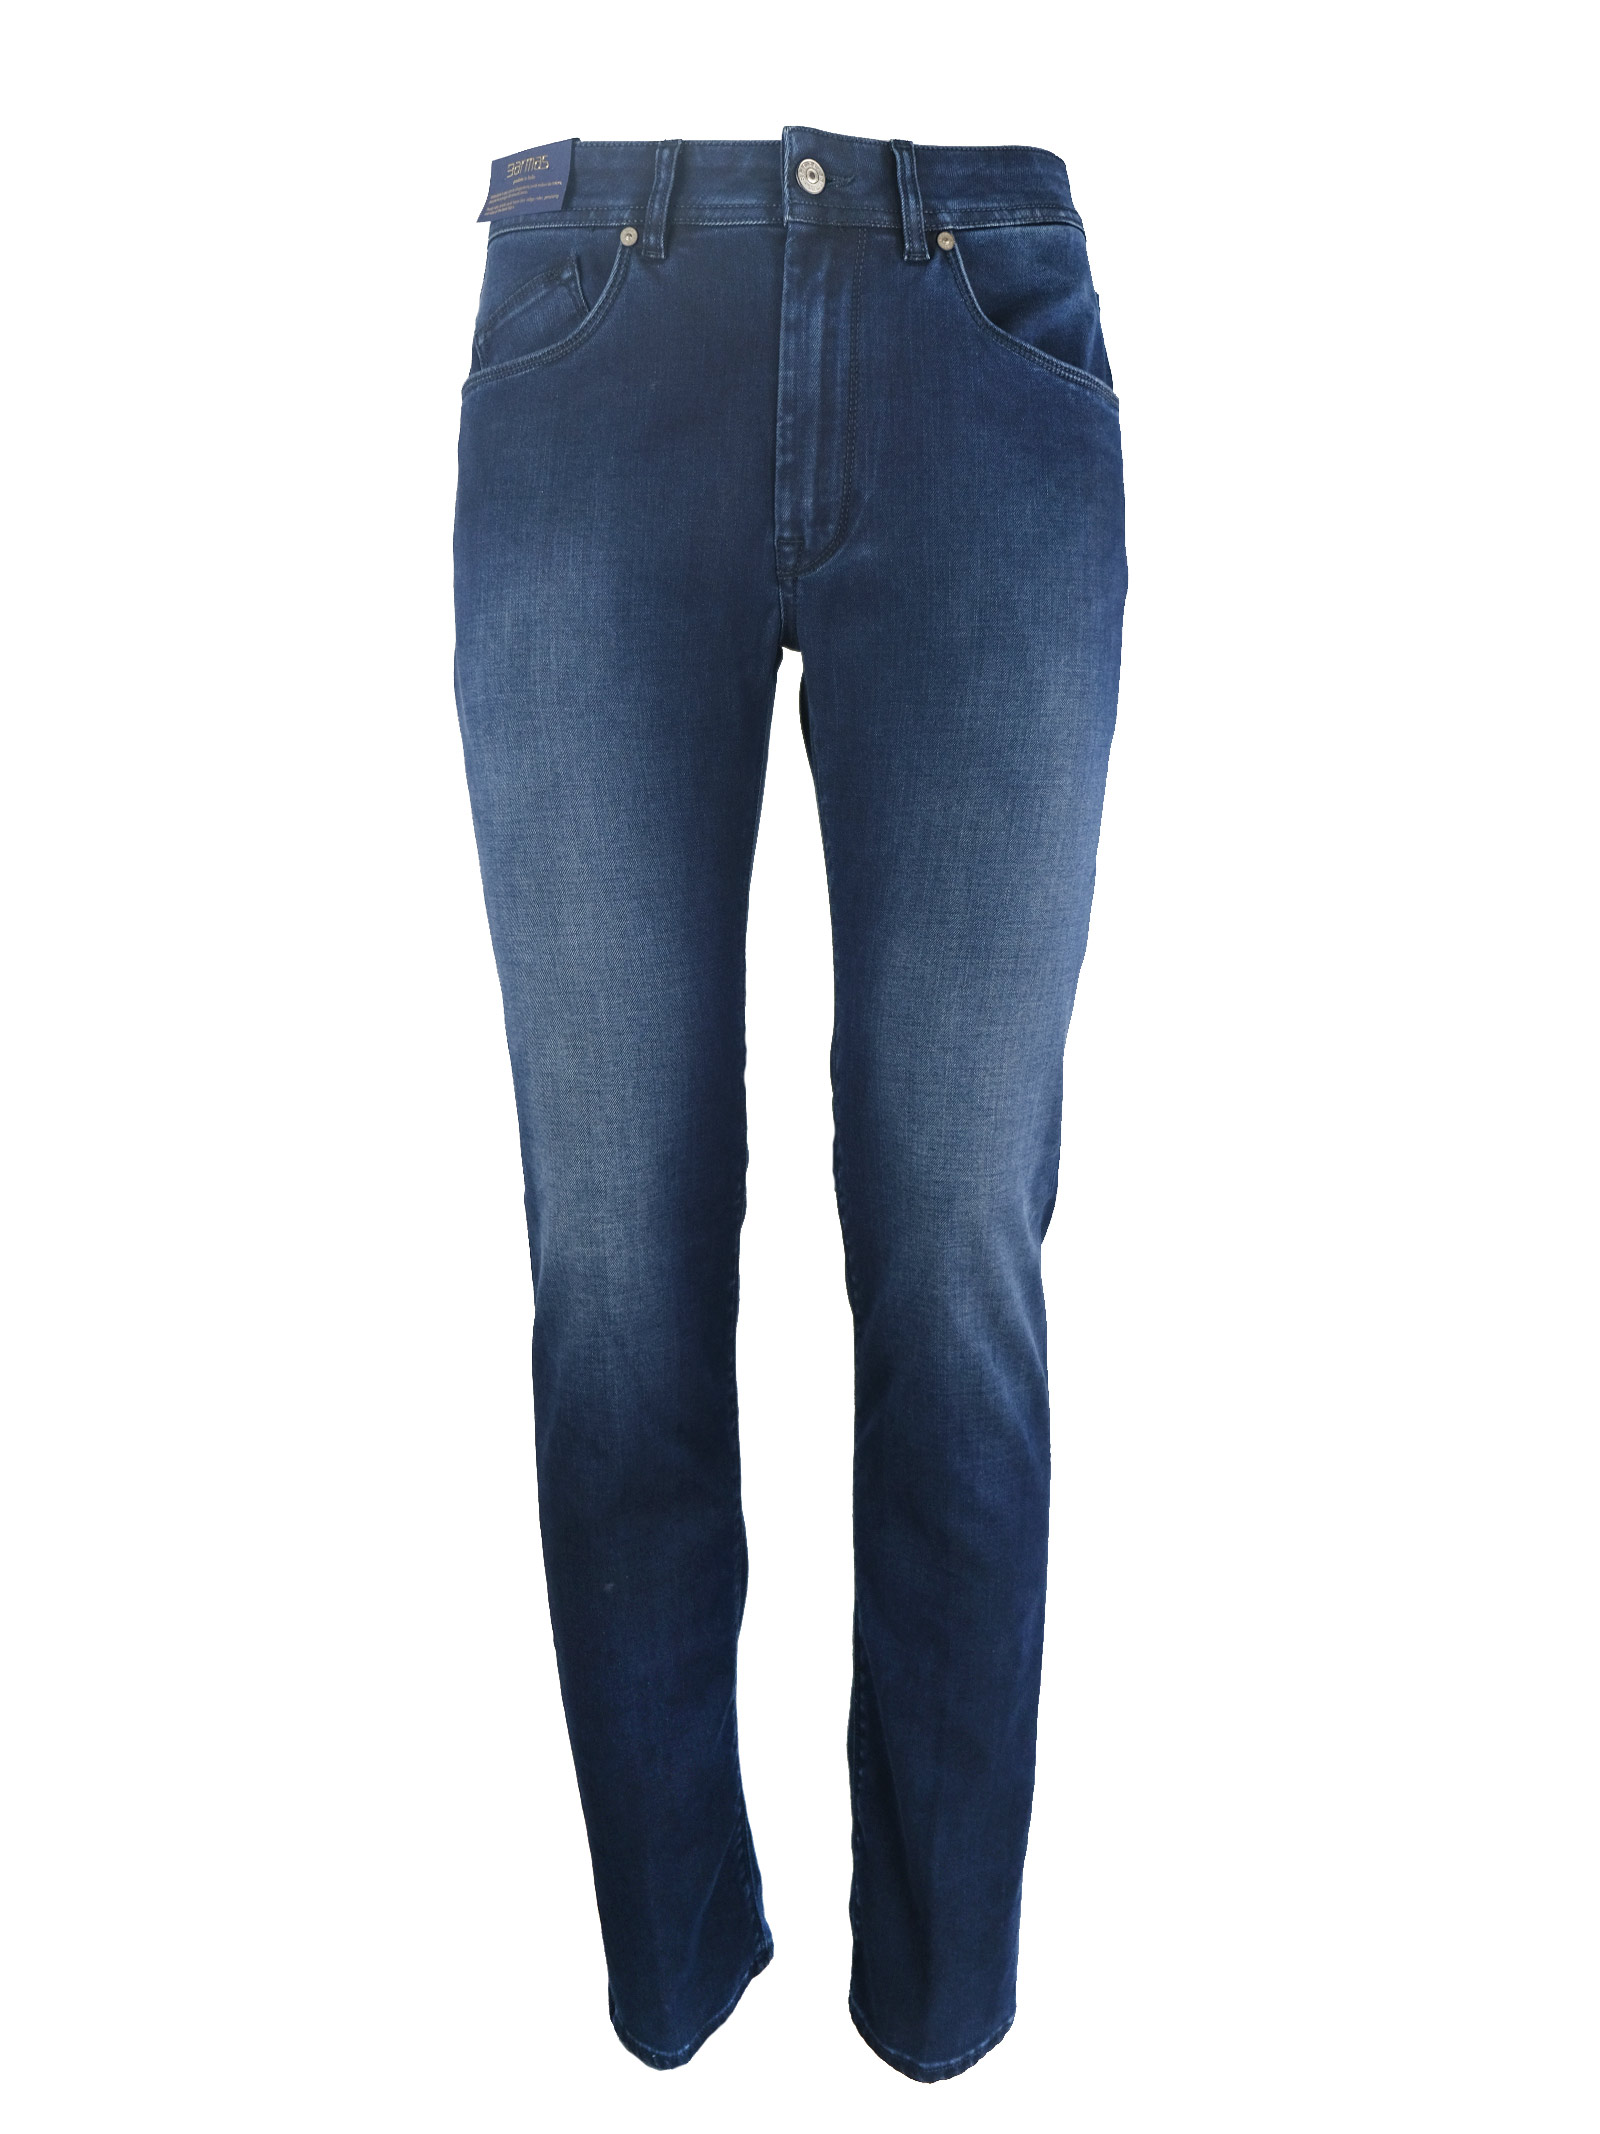 JEANS IN TELA DENIM 10.5 ONCE  BARMAS | Jeans | DEANB060 L028